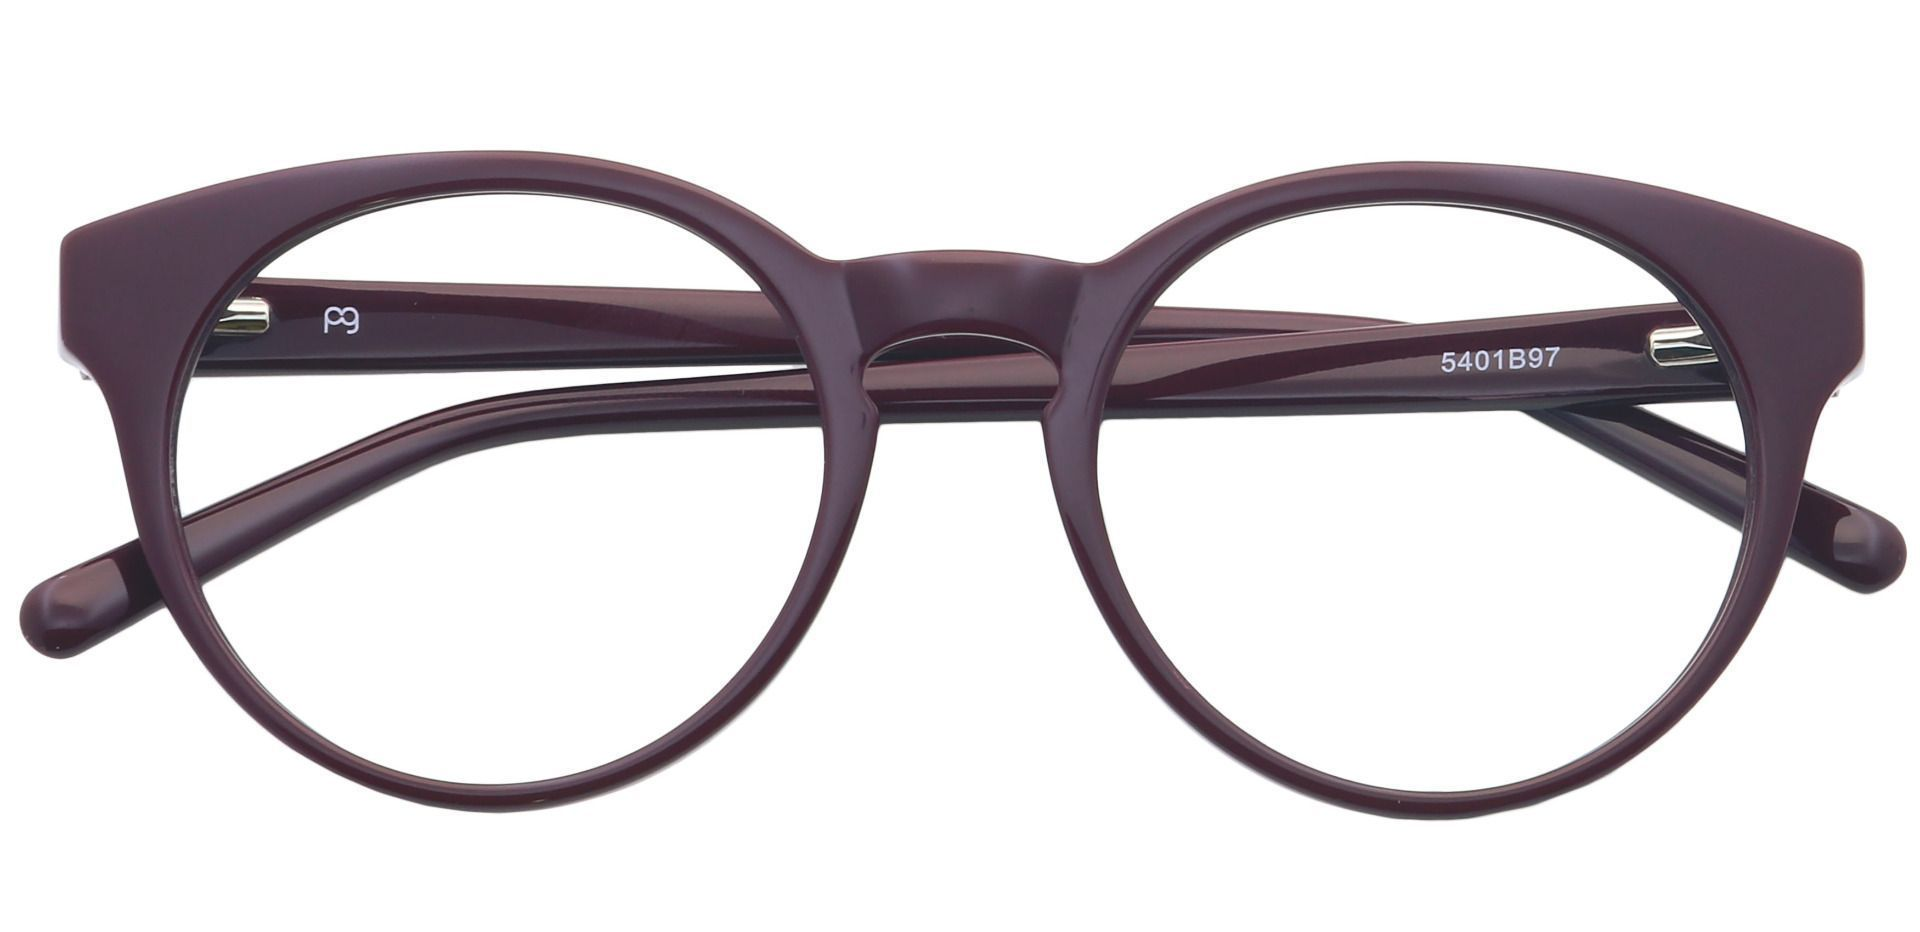 Spright Round Eyeglasses Frame - Wine